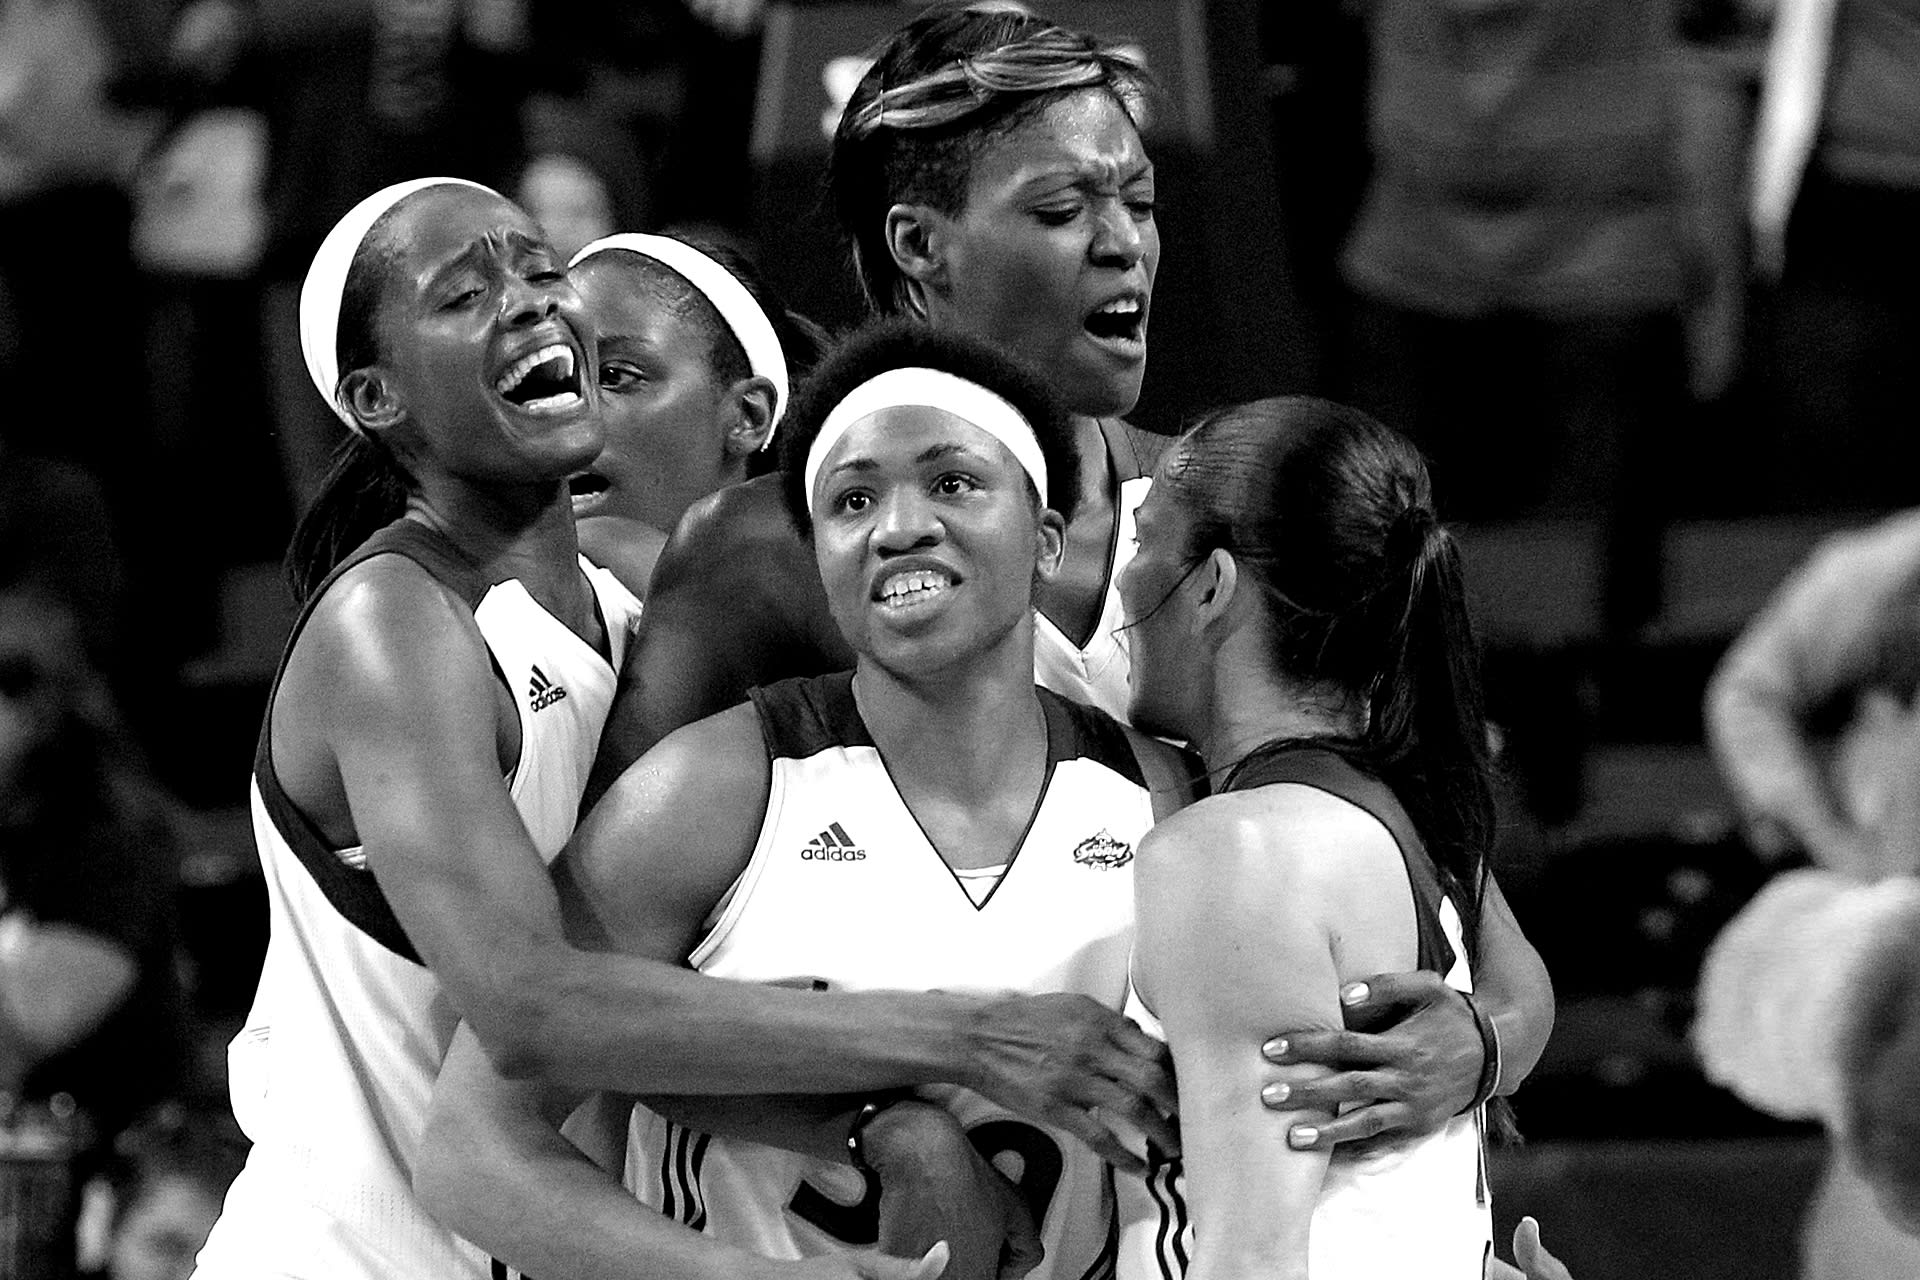 Seattle Storm's Sue Bird, right, is mobbed by teammates Swin Cash, left, Camille Little, Tanisha Wright, center front, and Ashley Robinson after Bird's game winning shot and the final buzzer against the Connecticut Sun in a WNBA basketball game Friday, Aug. 5, 2011, in Seattle. The Storm won 81-79, (AP Photo/Elaine Thompson)